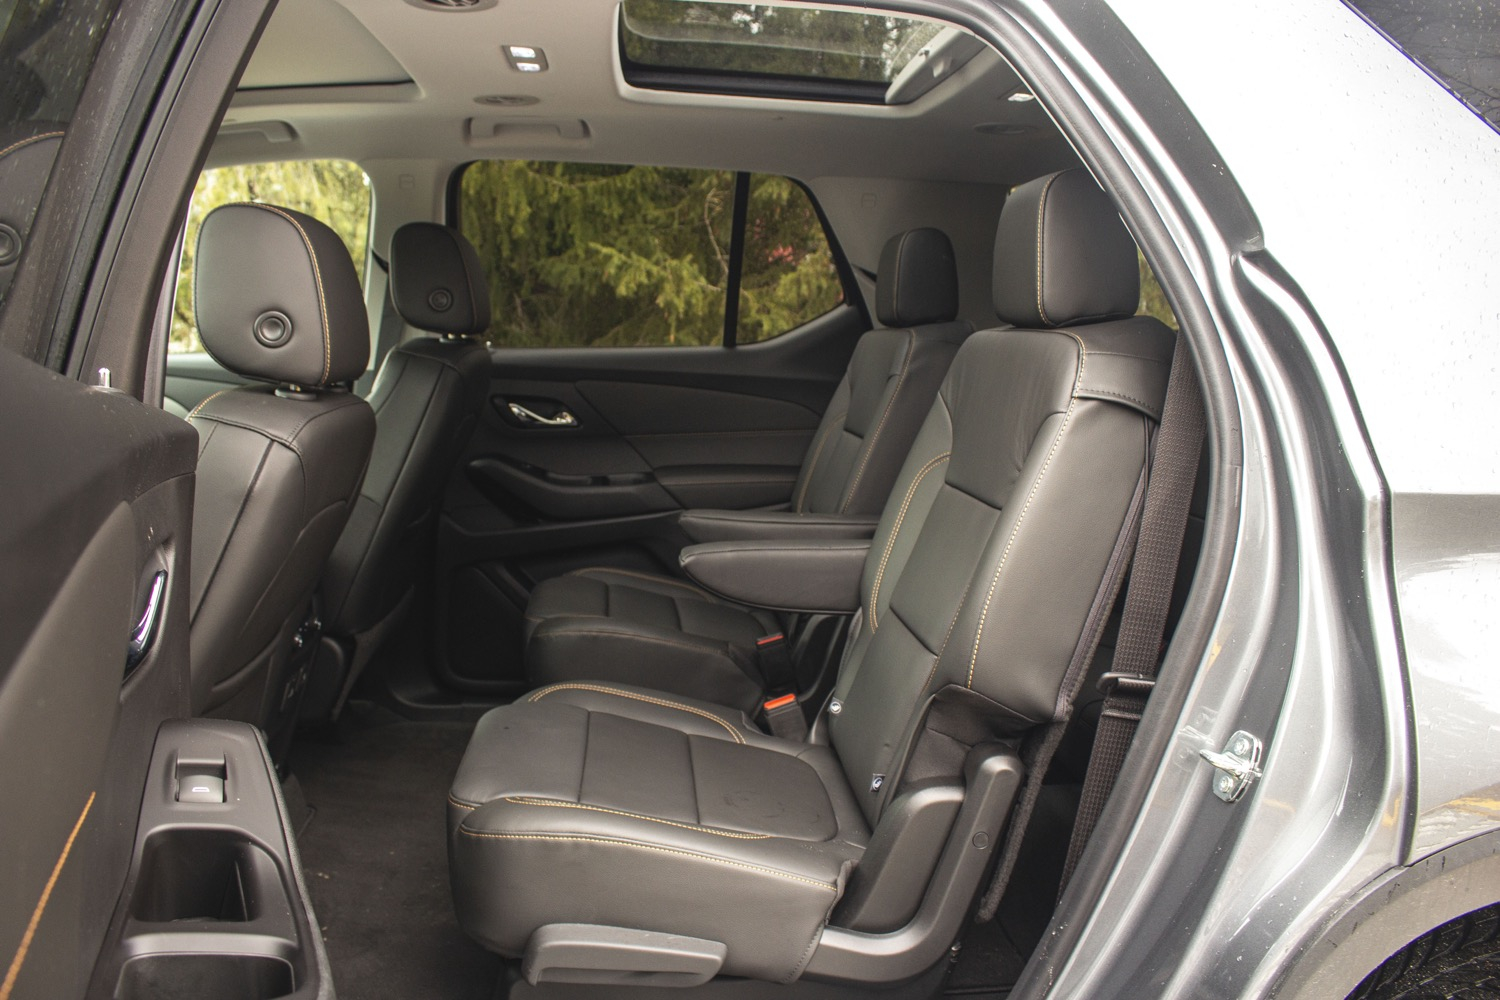 Chevrolet Traverse Shows Off Towing Capacity In Korea | Gm 2022 Buick Encore Seat Covers, Safety Features, Towing Capacity